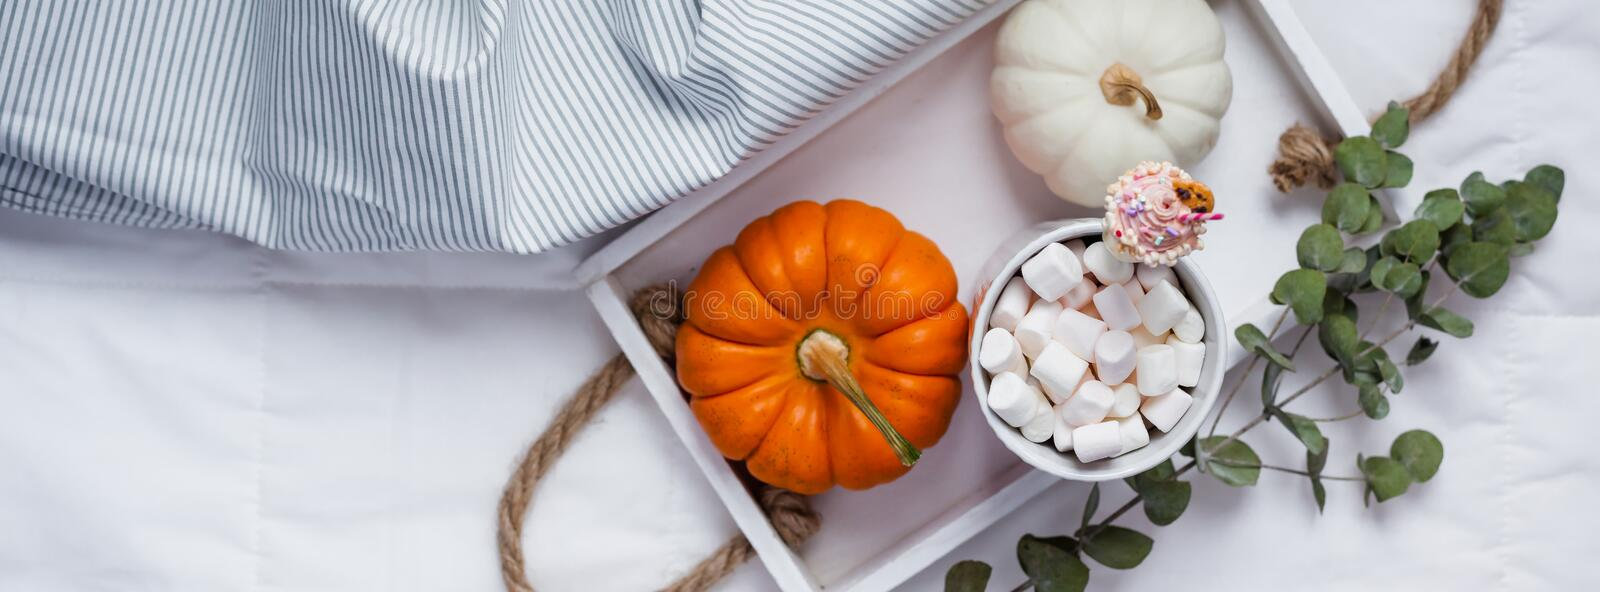 Cozy warm home comfort morning stock image